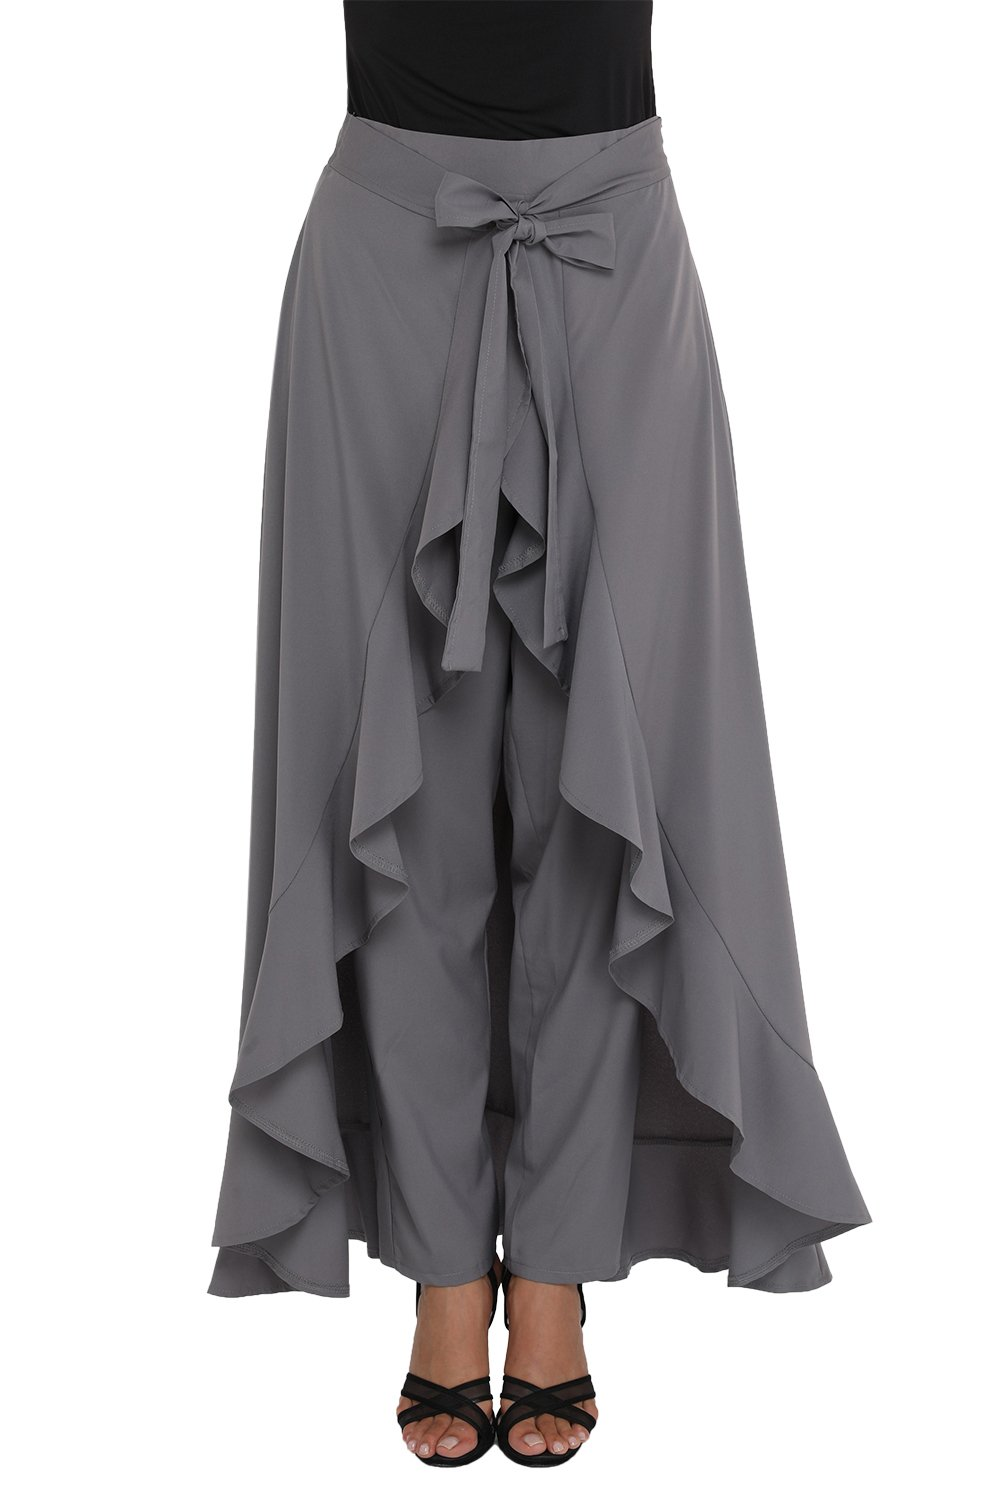 Designer97 Women's Fashion Casual Trousers Harem Wide Leg Chiffon Tie-Waist Ruffle Palazzo Pants Grey Large